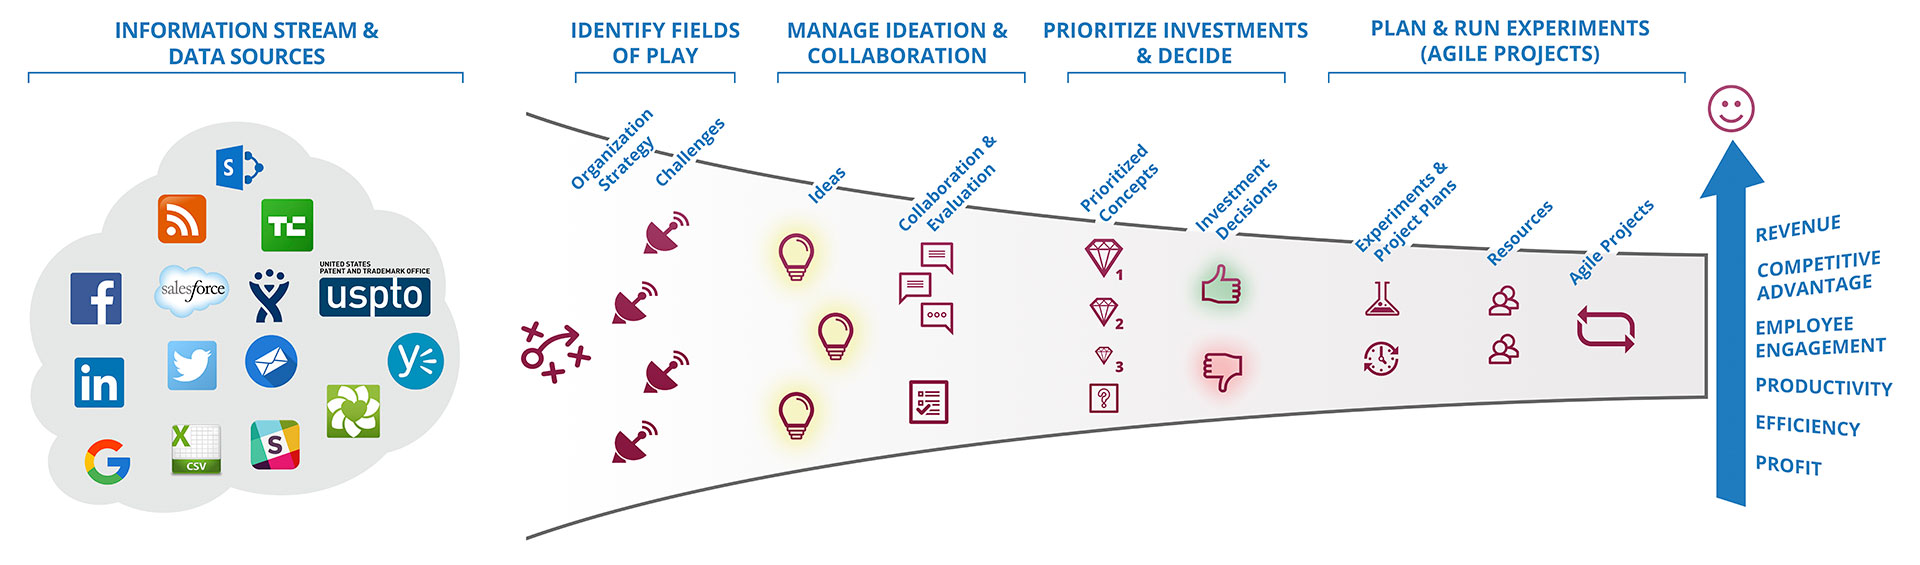 Innovation Management Platform Diagram